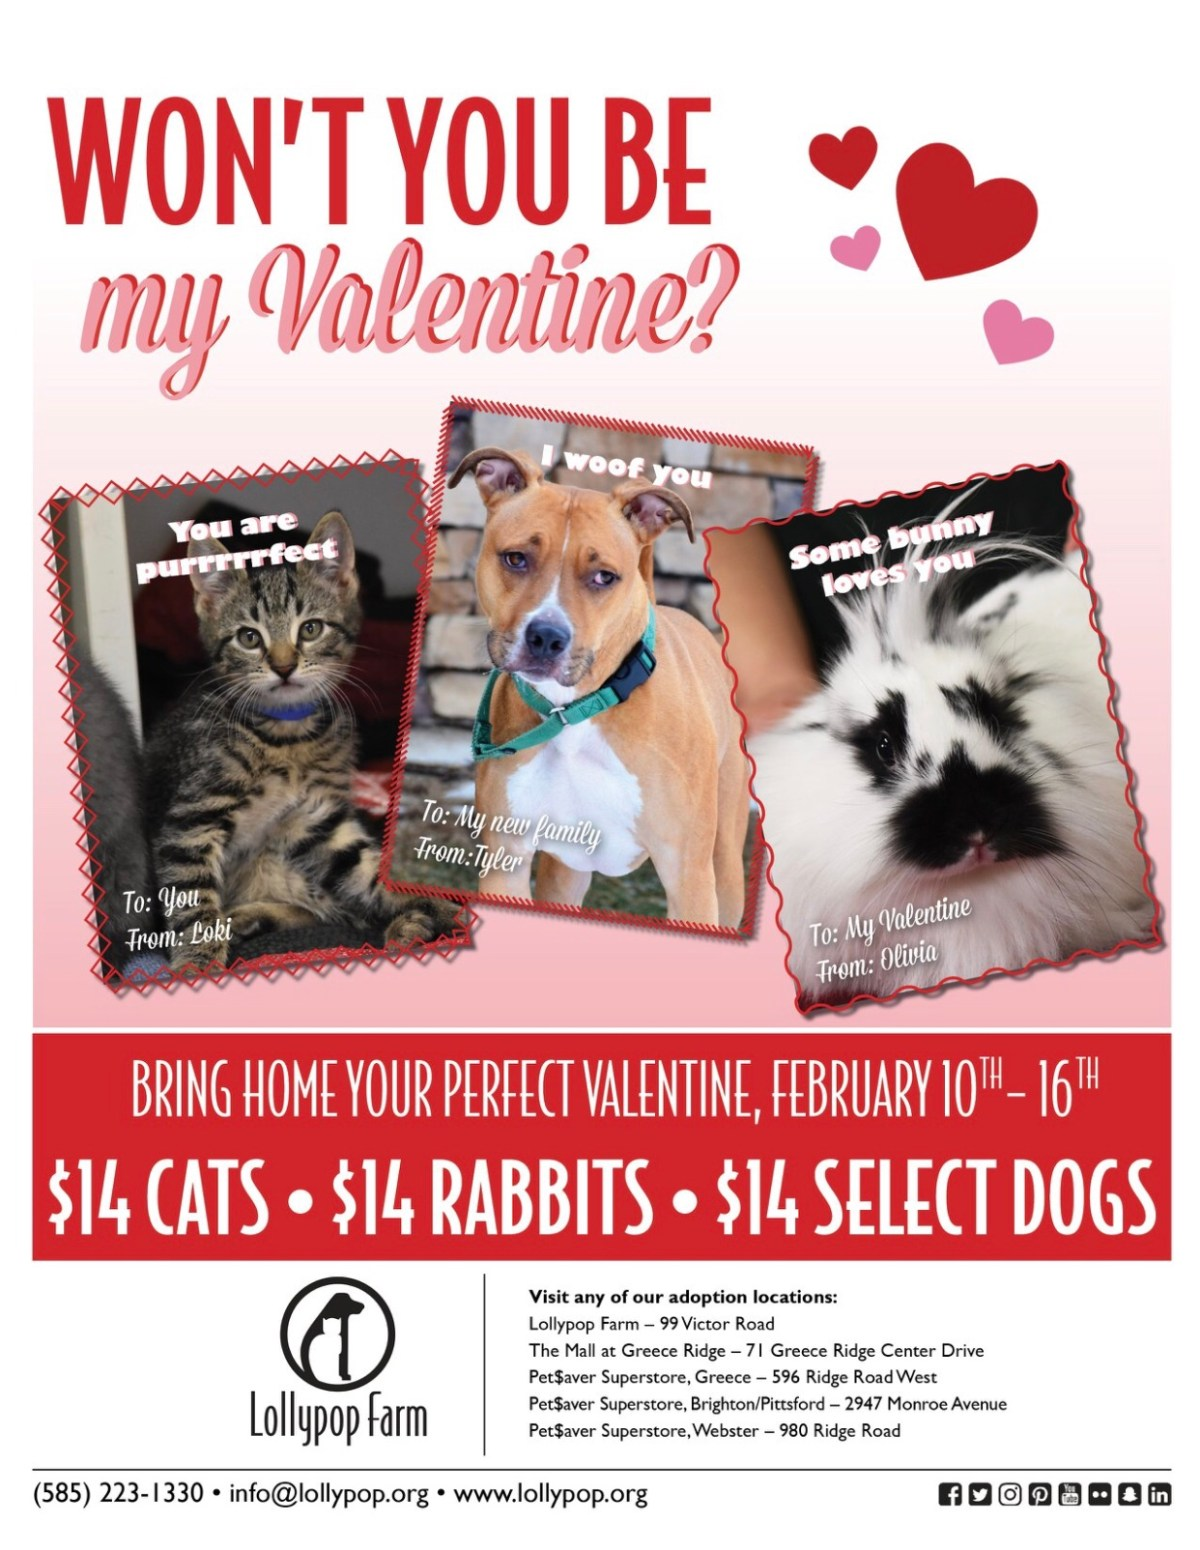 Adoption special with a dog, cat, and a rabbit